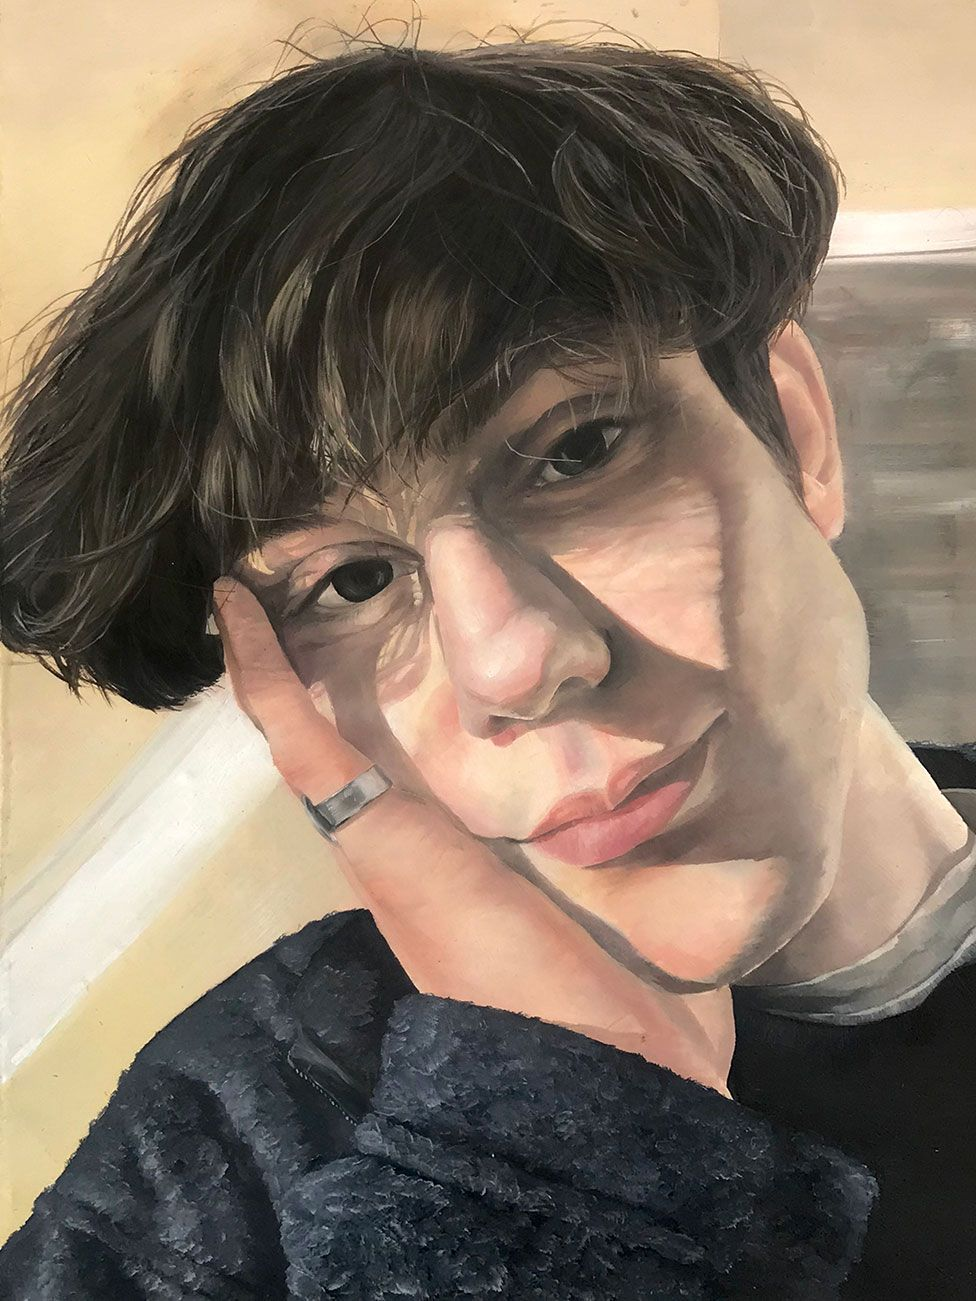 A painting of a young person